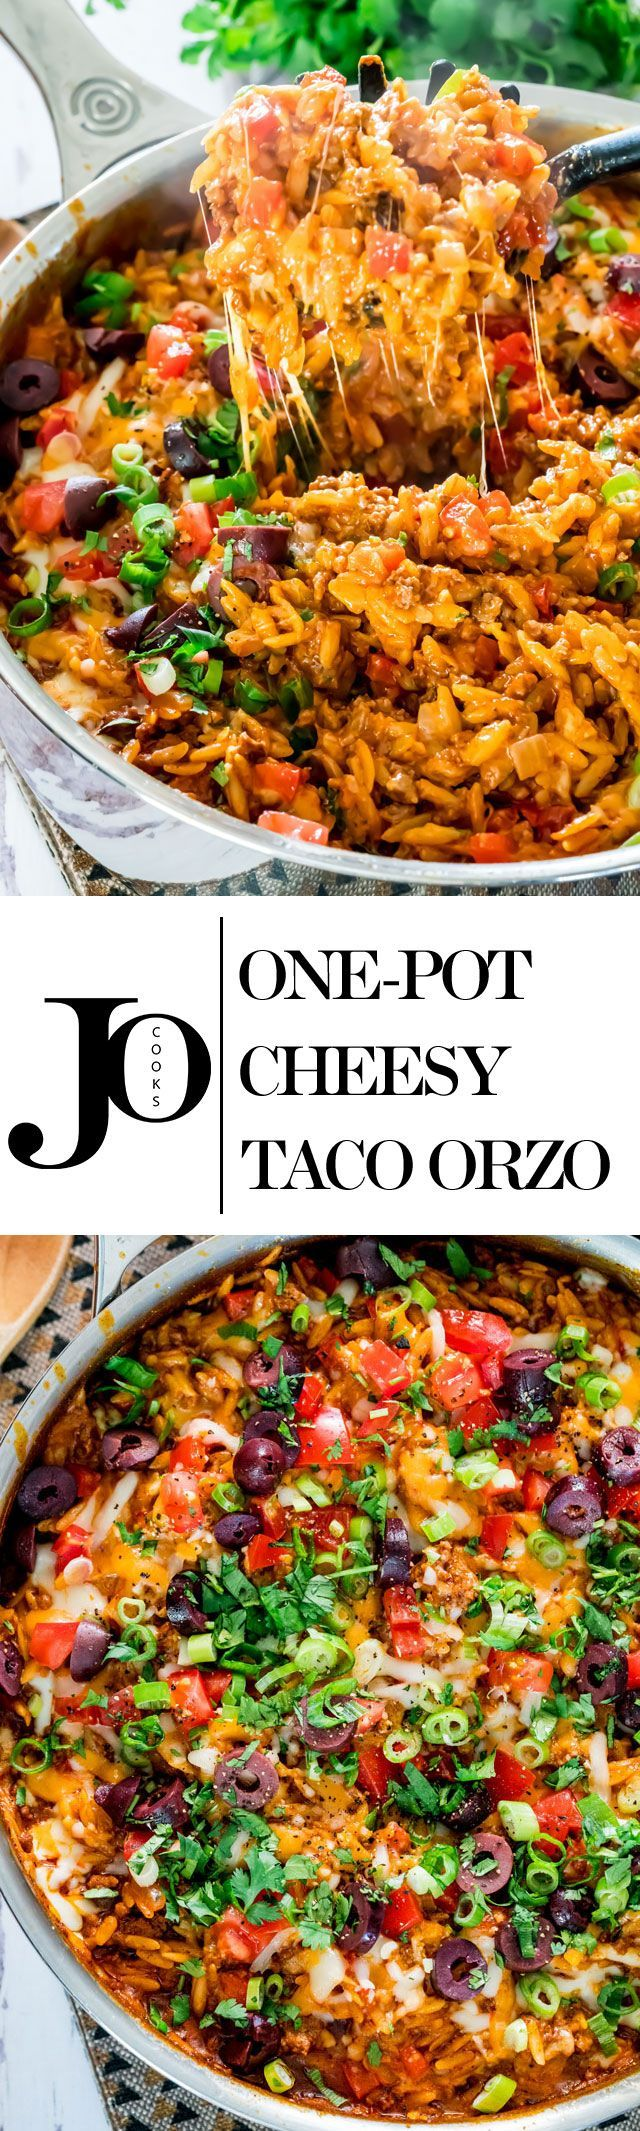 One Pot Cheesy Taco Orzo Homemade Enchilada Saucehomemade